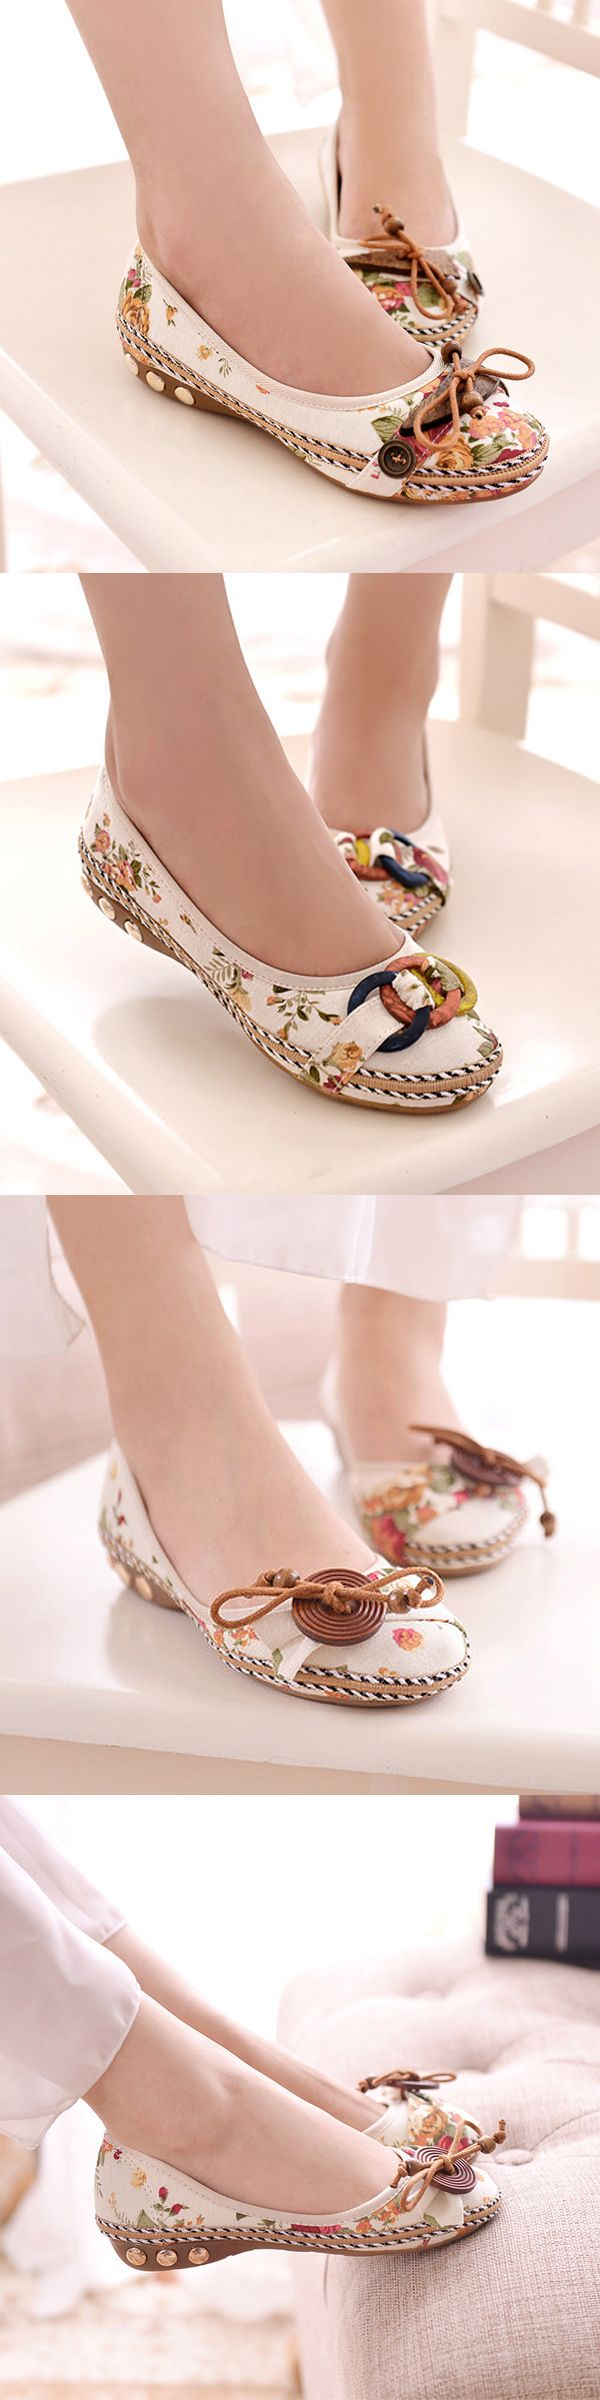 US$14.15 Bowknot Button Flower Small Wooden Decoration Slip On Flat Loafers